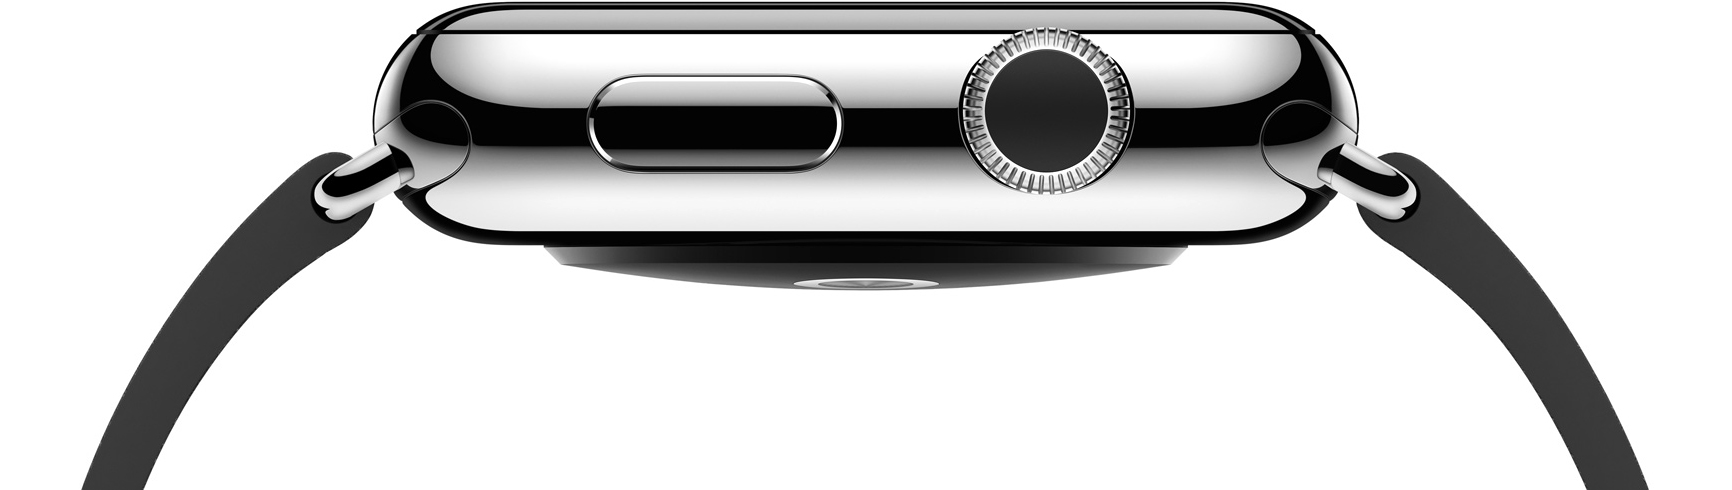 Creating Bands For Apple Watch Accessories Apple Developer